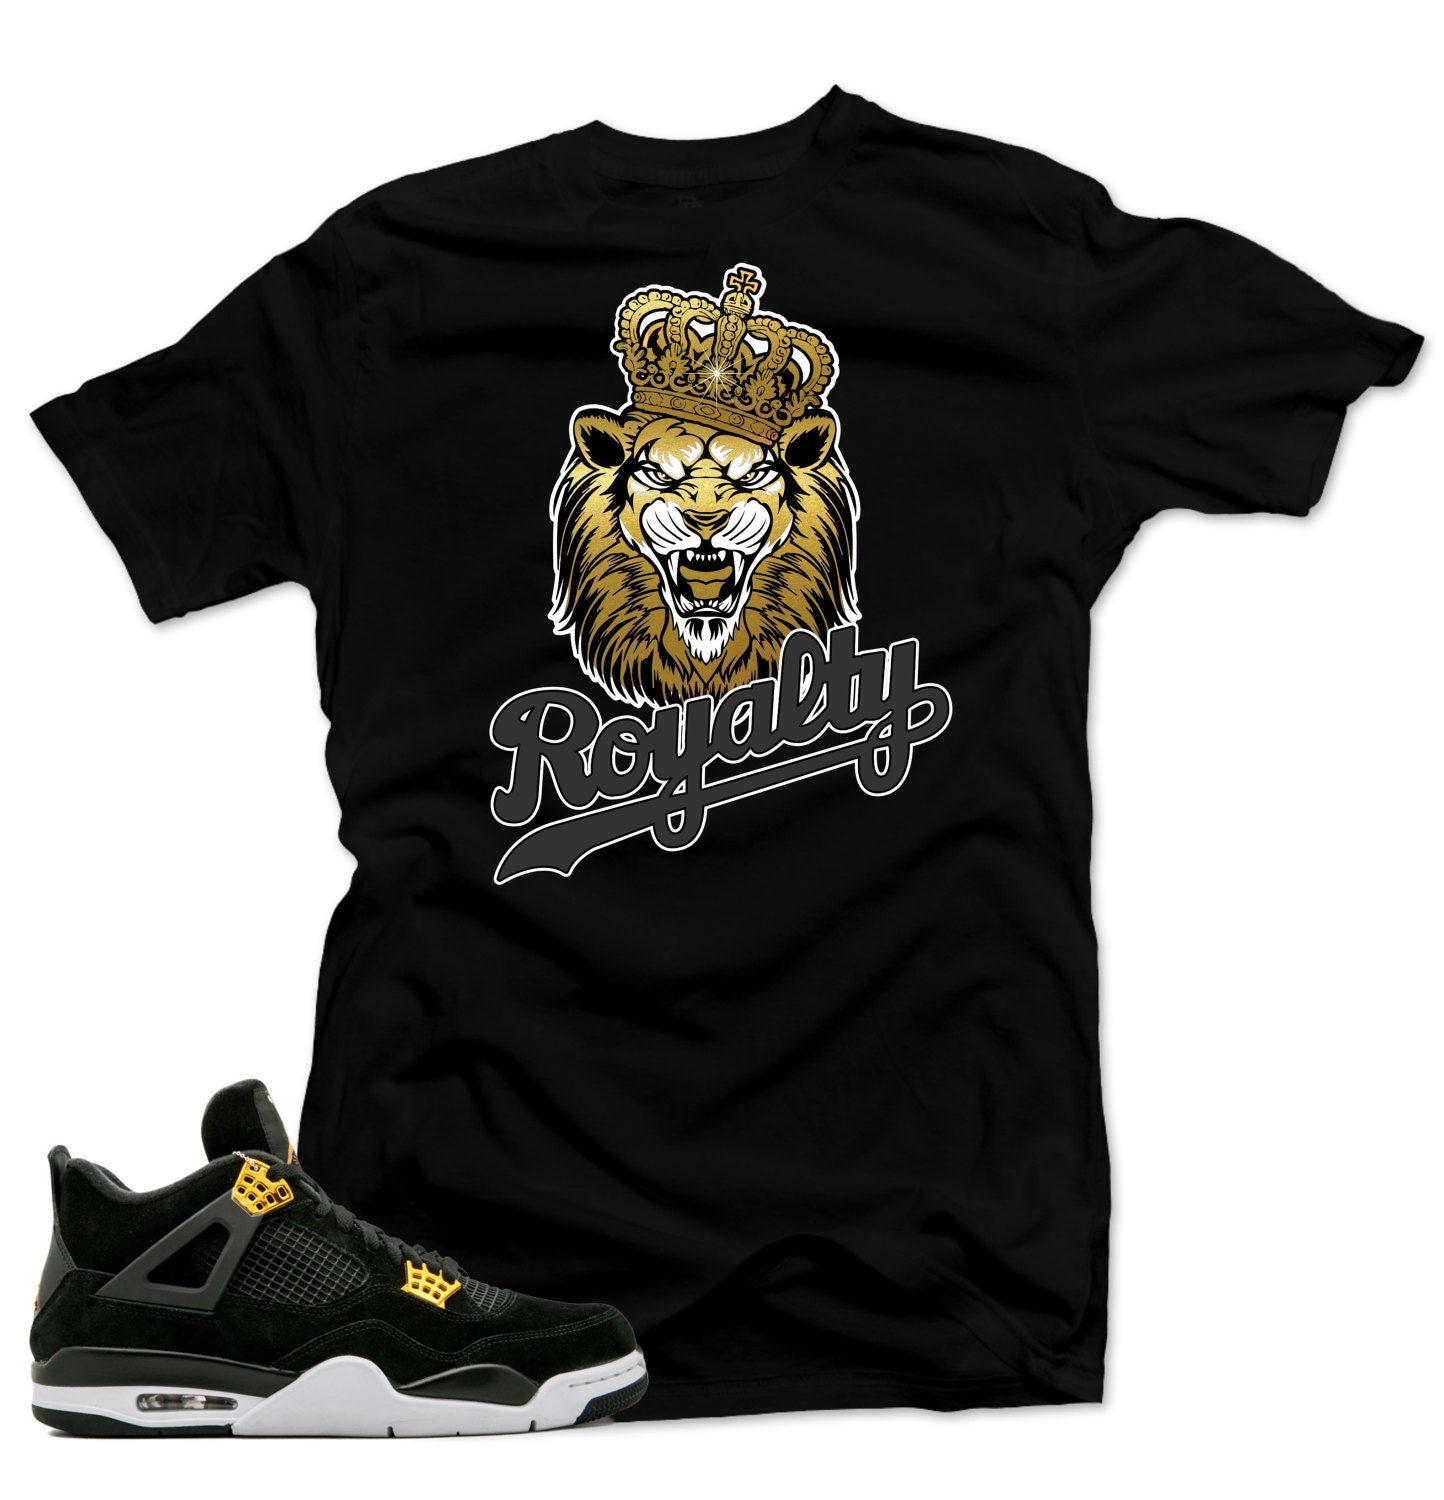 6131e2d6b69af T Shirt to Match Air Jordan 4 Royalty Shoes